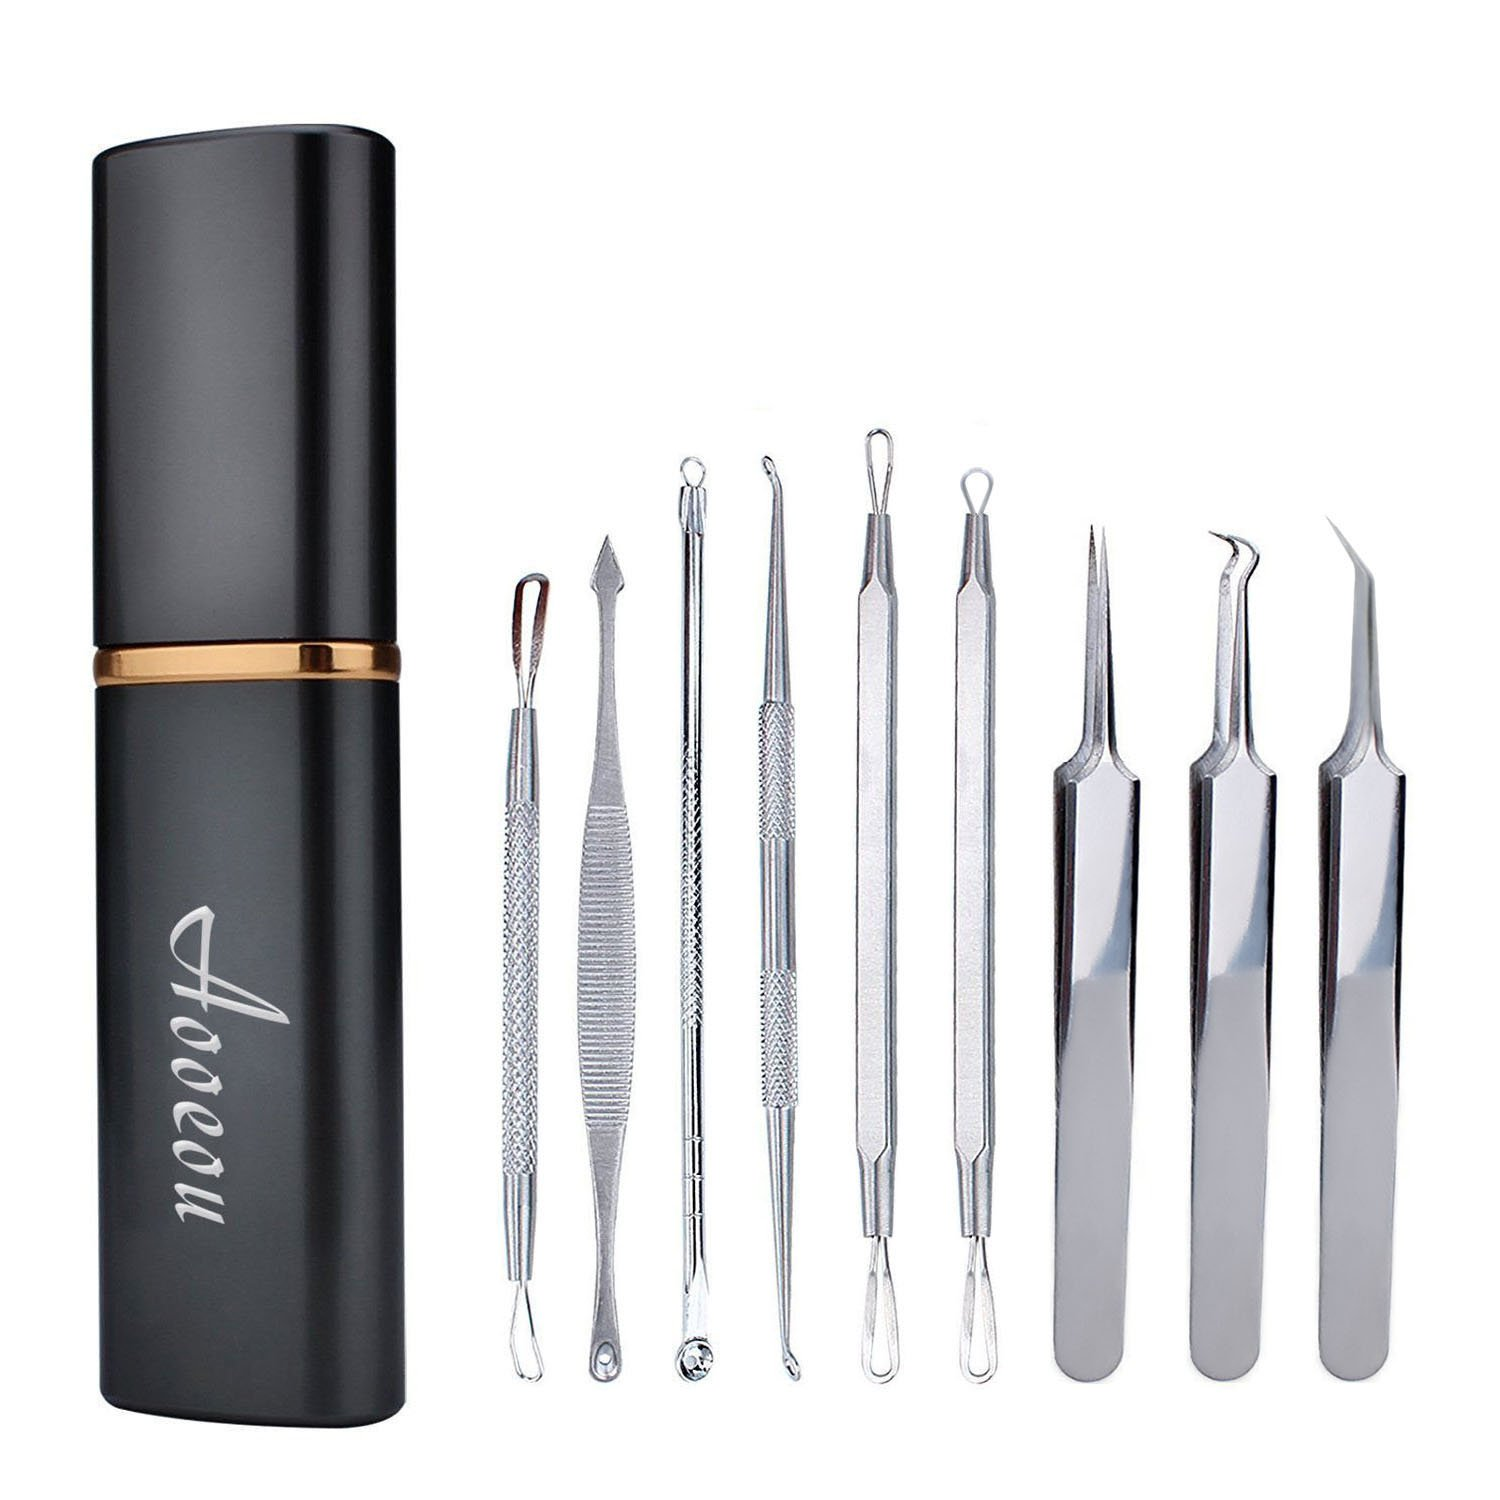 Blackhead Extractor kit, Remover Acne Tool Professional Stainless Steel Comedone Extractor Instrument Tool Set for Curing Facial Aooeou